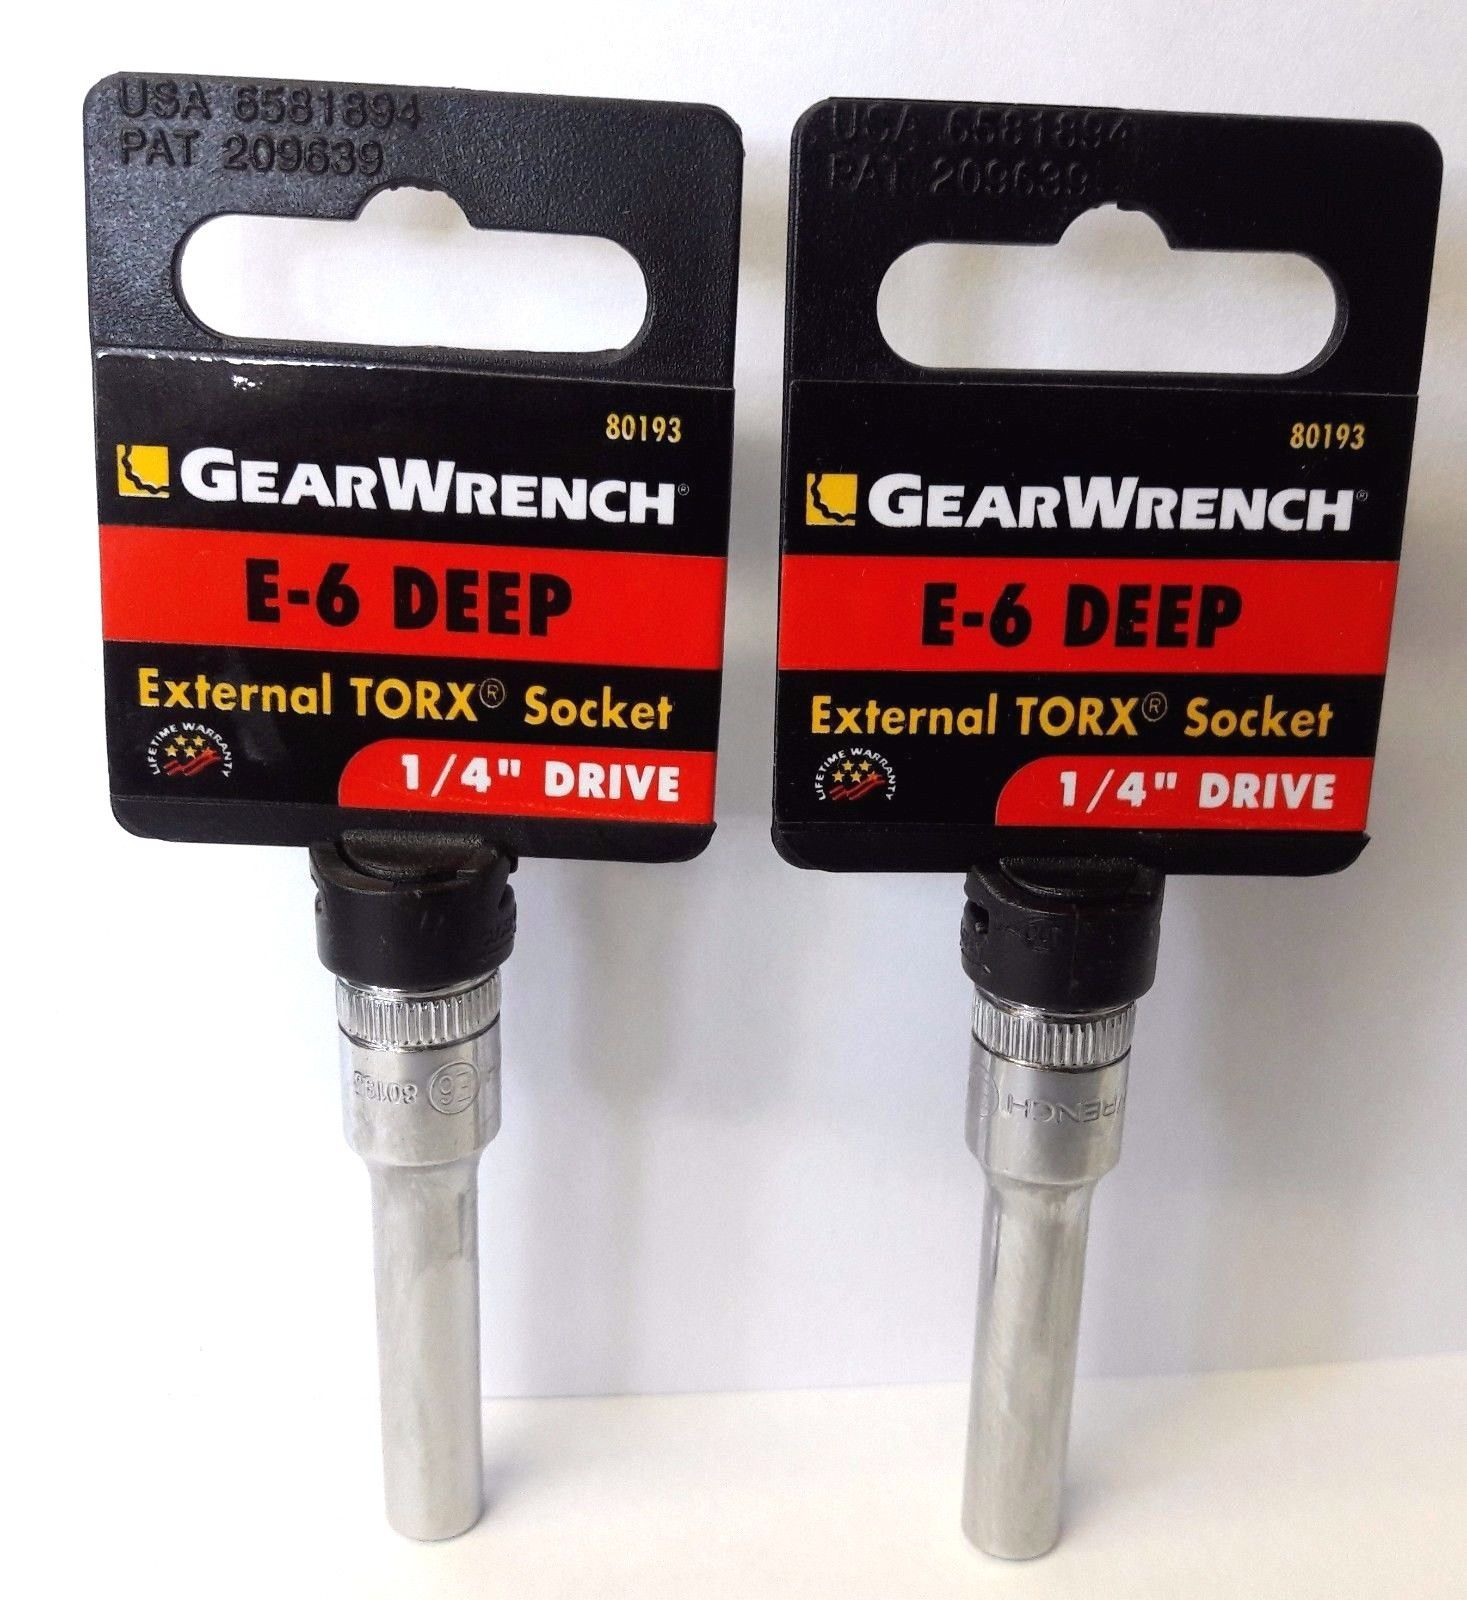 GearWrench 80193 1/4